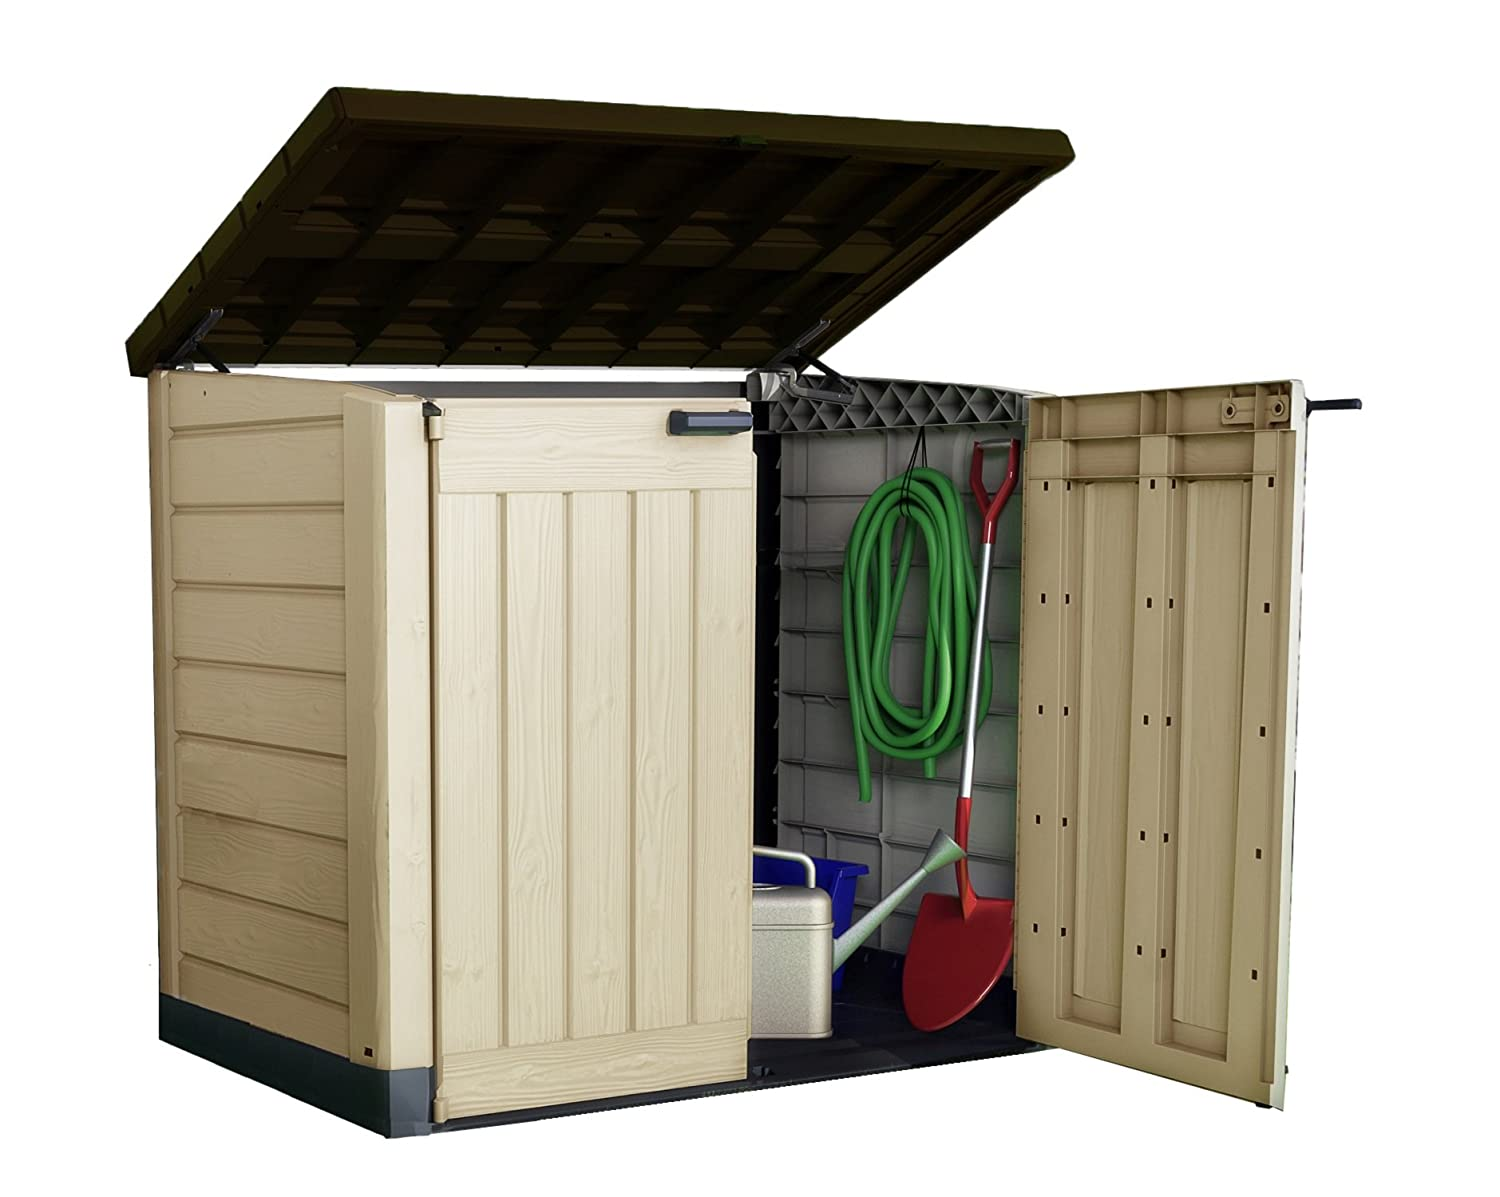 Keter Store It Out Max Outdoor Plastic Garden Storage Shed, 145.5 X 82 X  125 Cm   Beige/Brown: Amazon.co.uk: Garden U0026 Outdoors